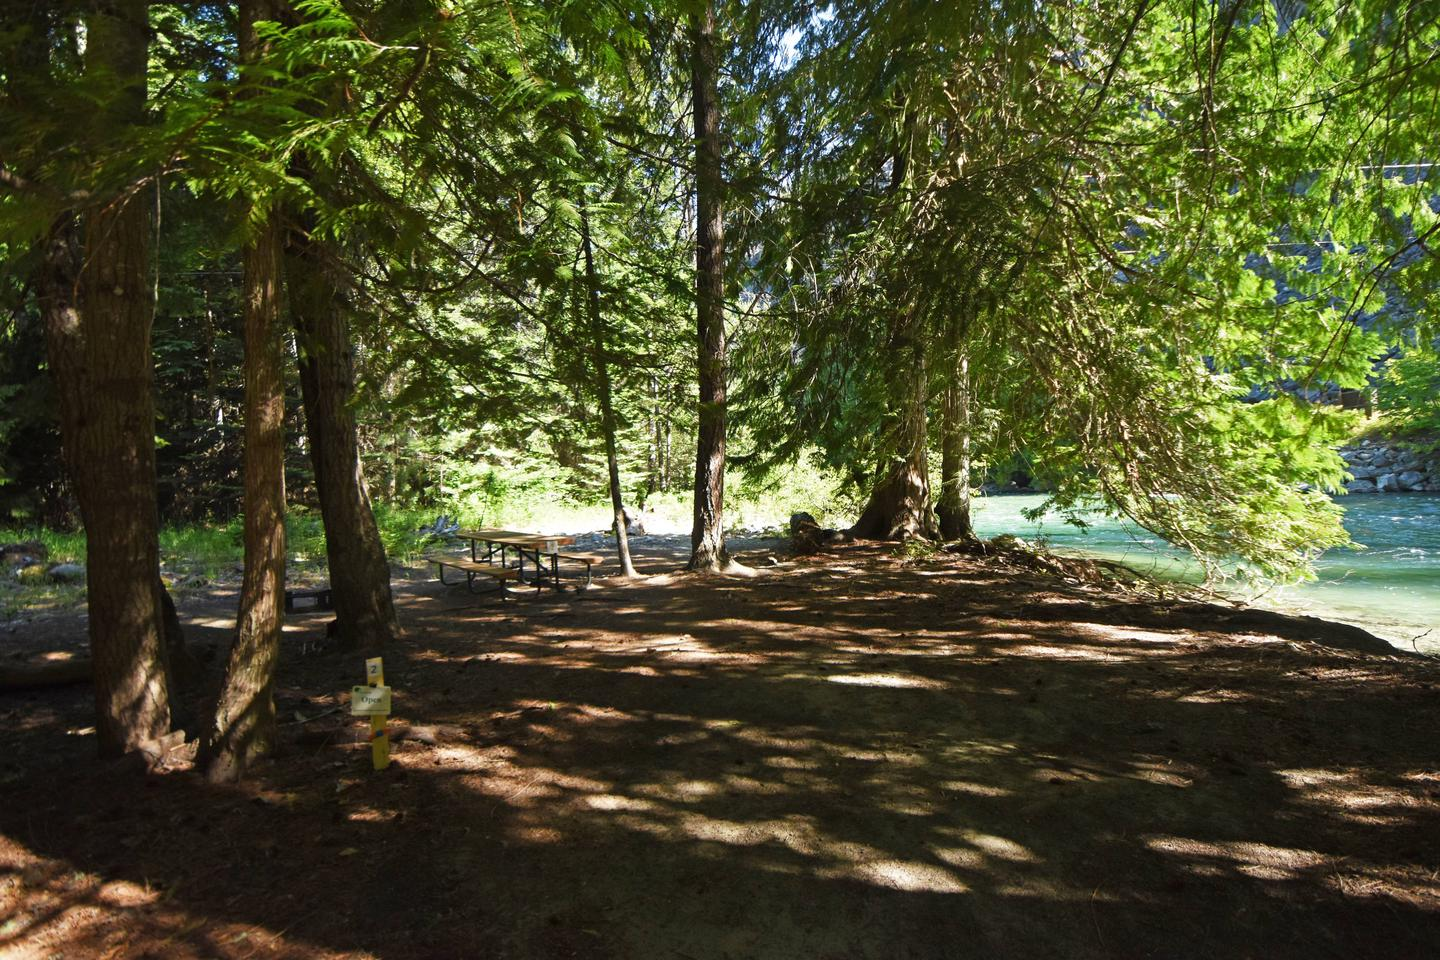 View of campsite next to river with picnic table and tent pads.View of Harlequin Campsite 2